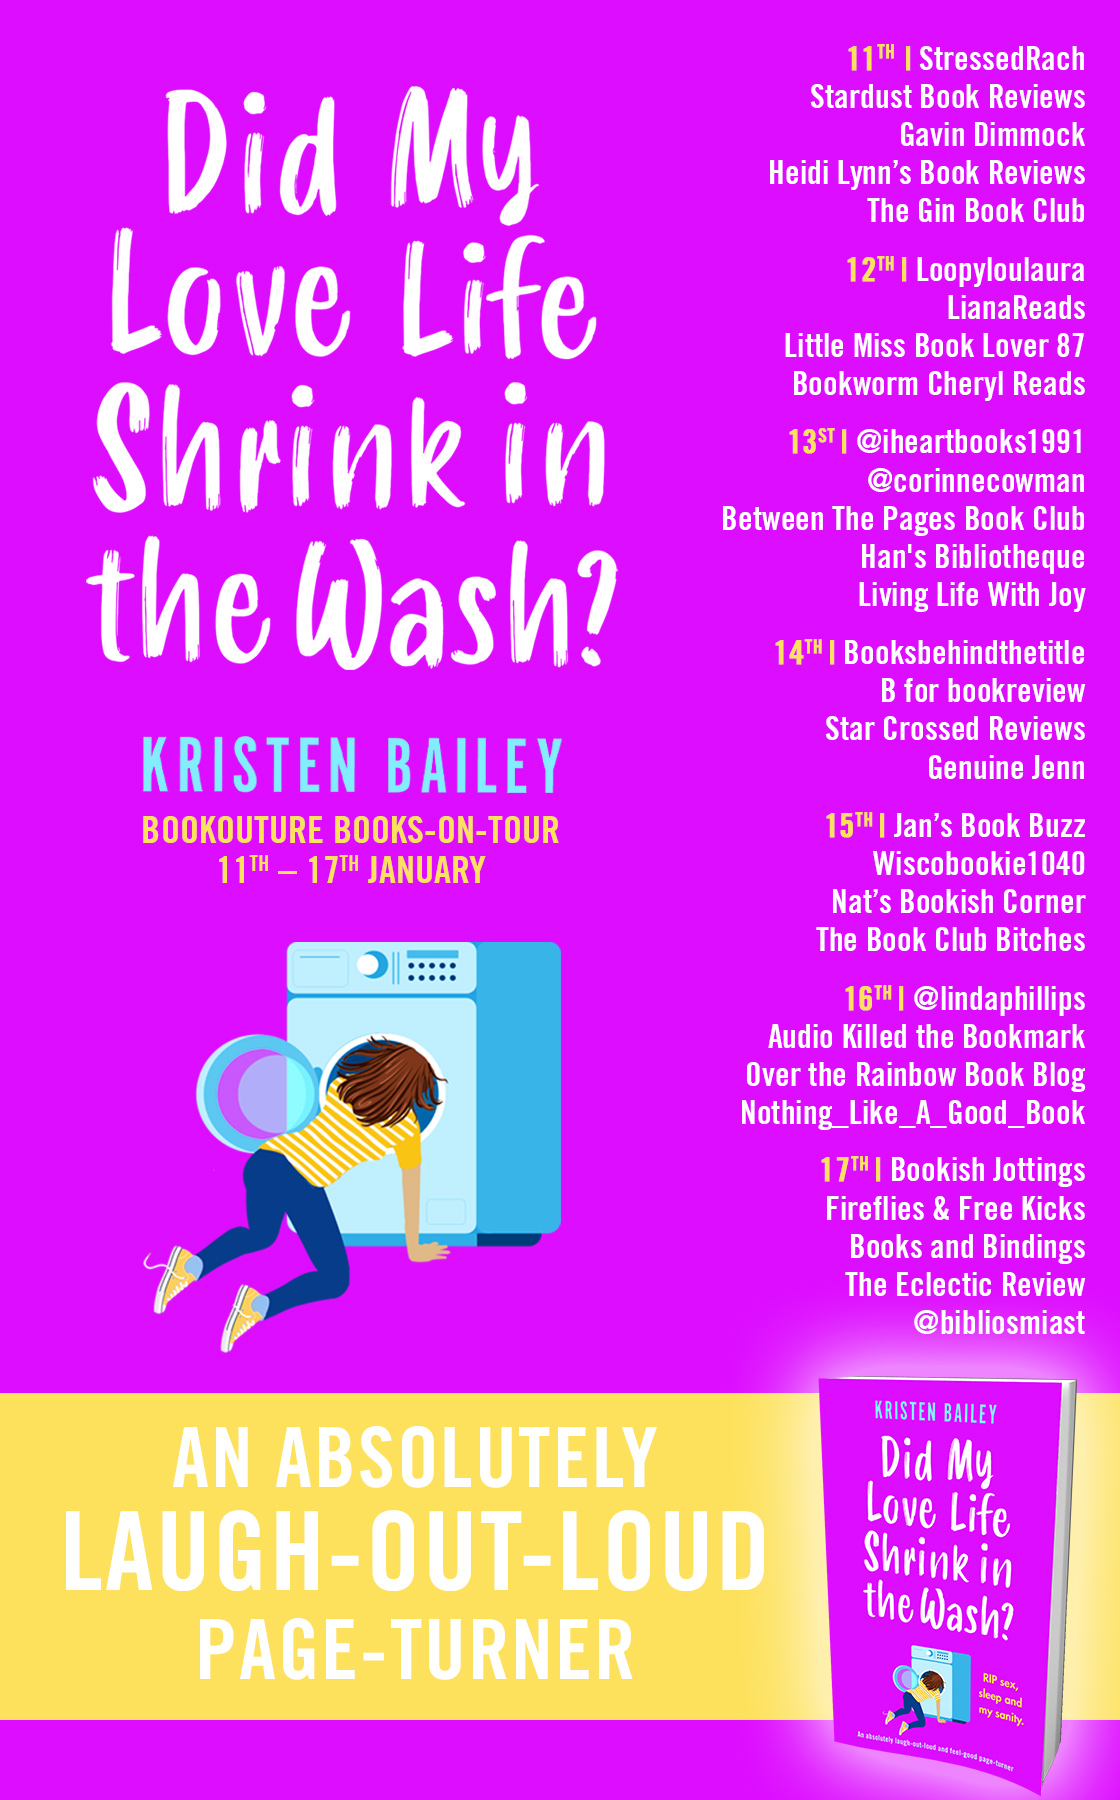 Blog Tour Review: Did My Love Life Shrink in the Wash?